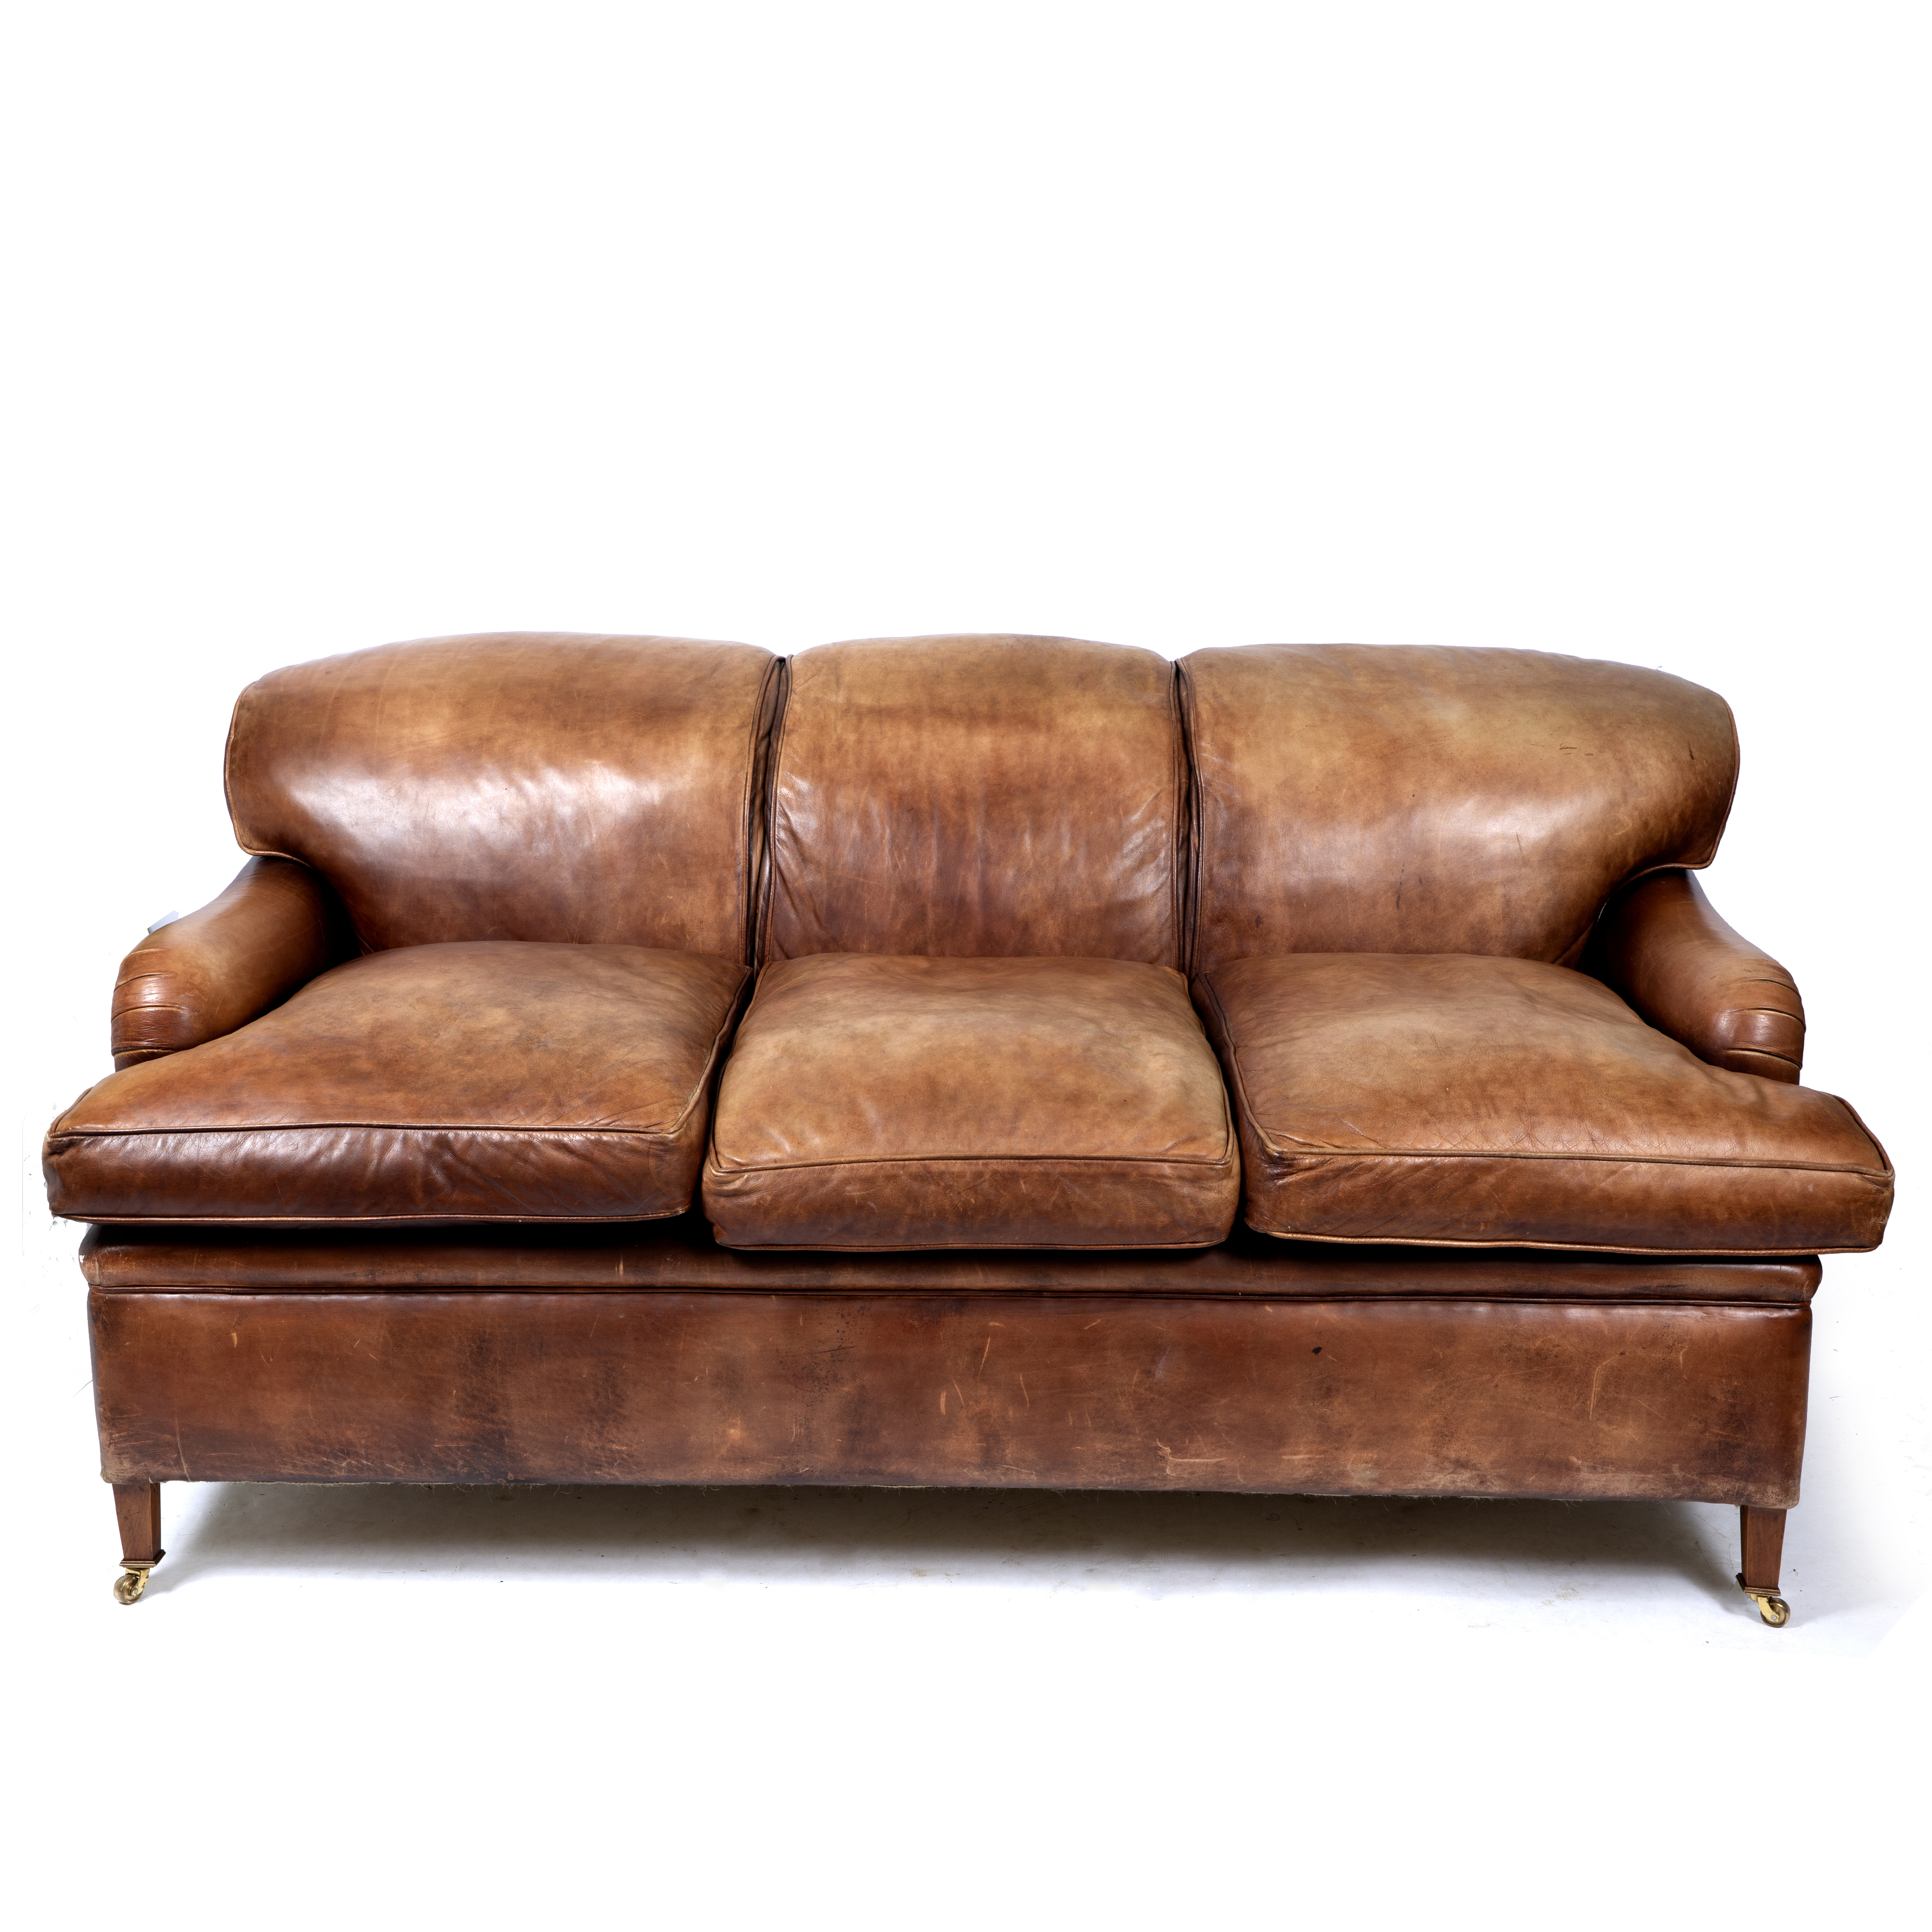 A HOWARD CHAIRS LIMITED BROWN LEATHER UPHOLSTERED THREE SEATER SOFA Image